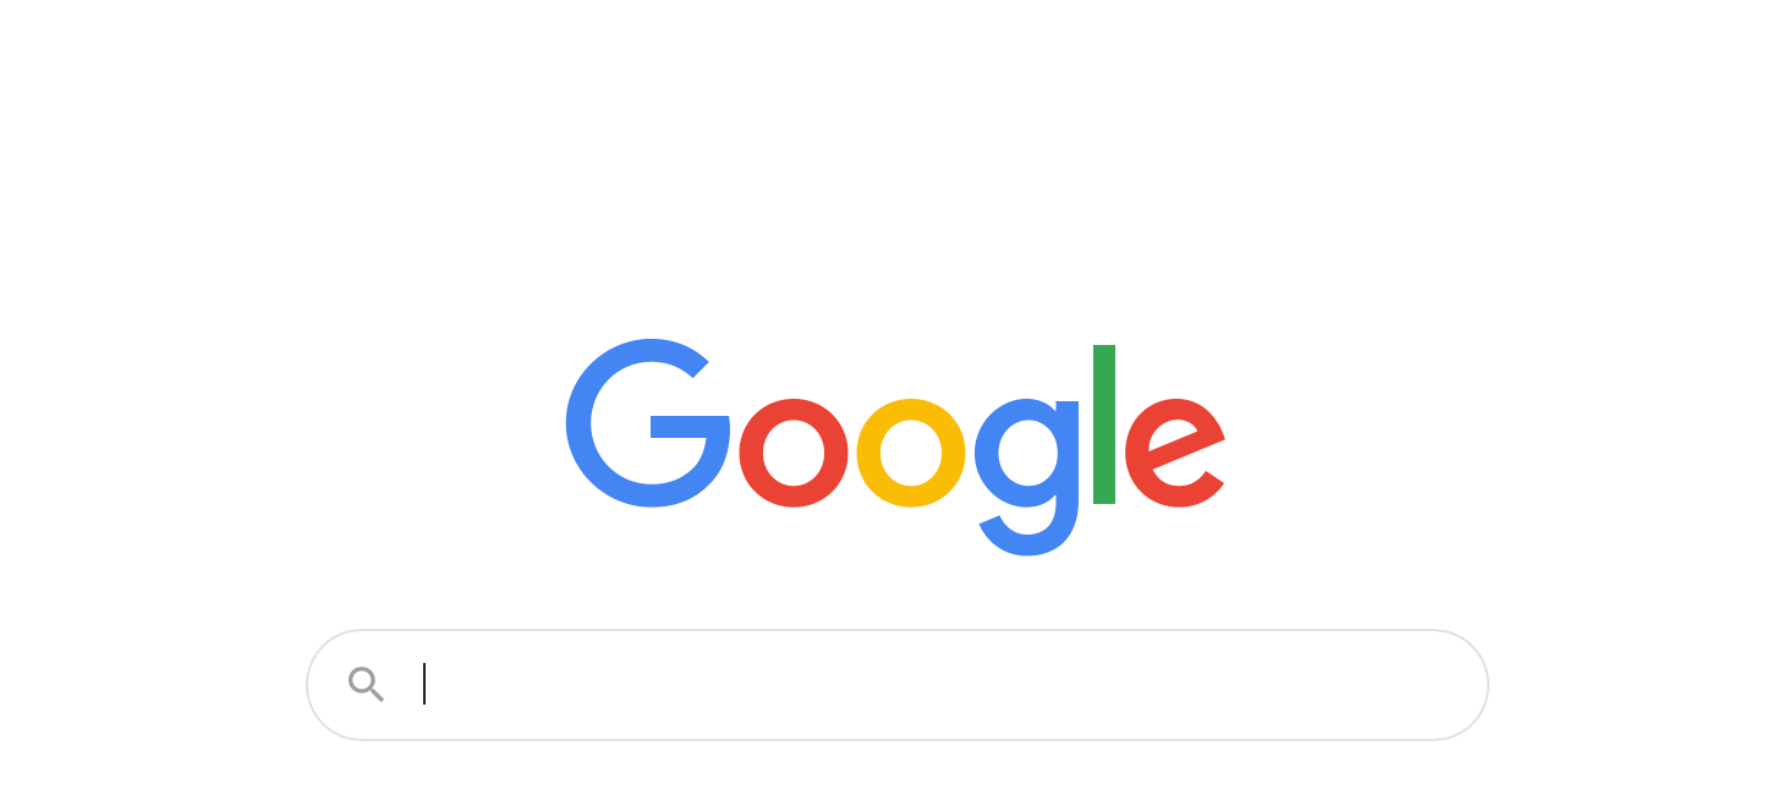 Top 10 Google Searches in 2020